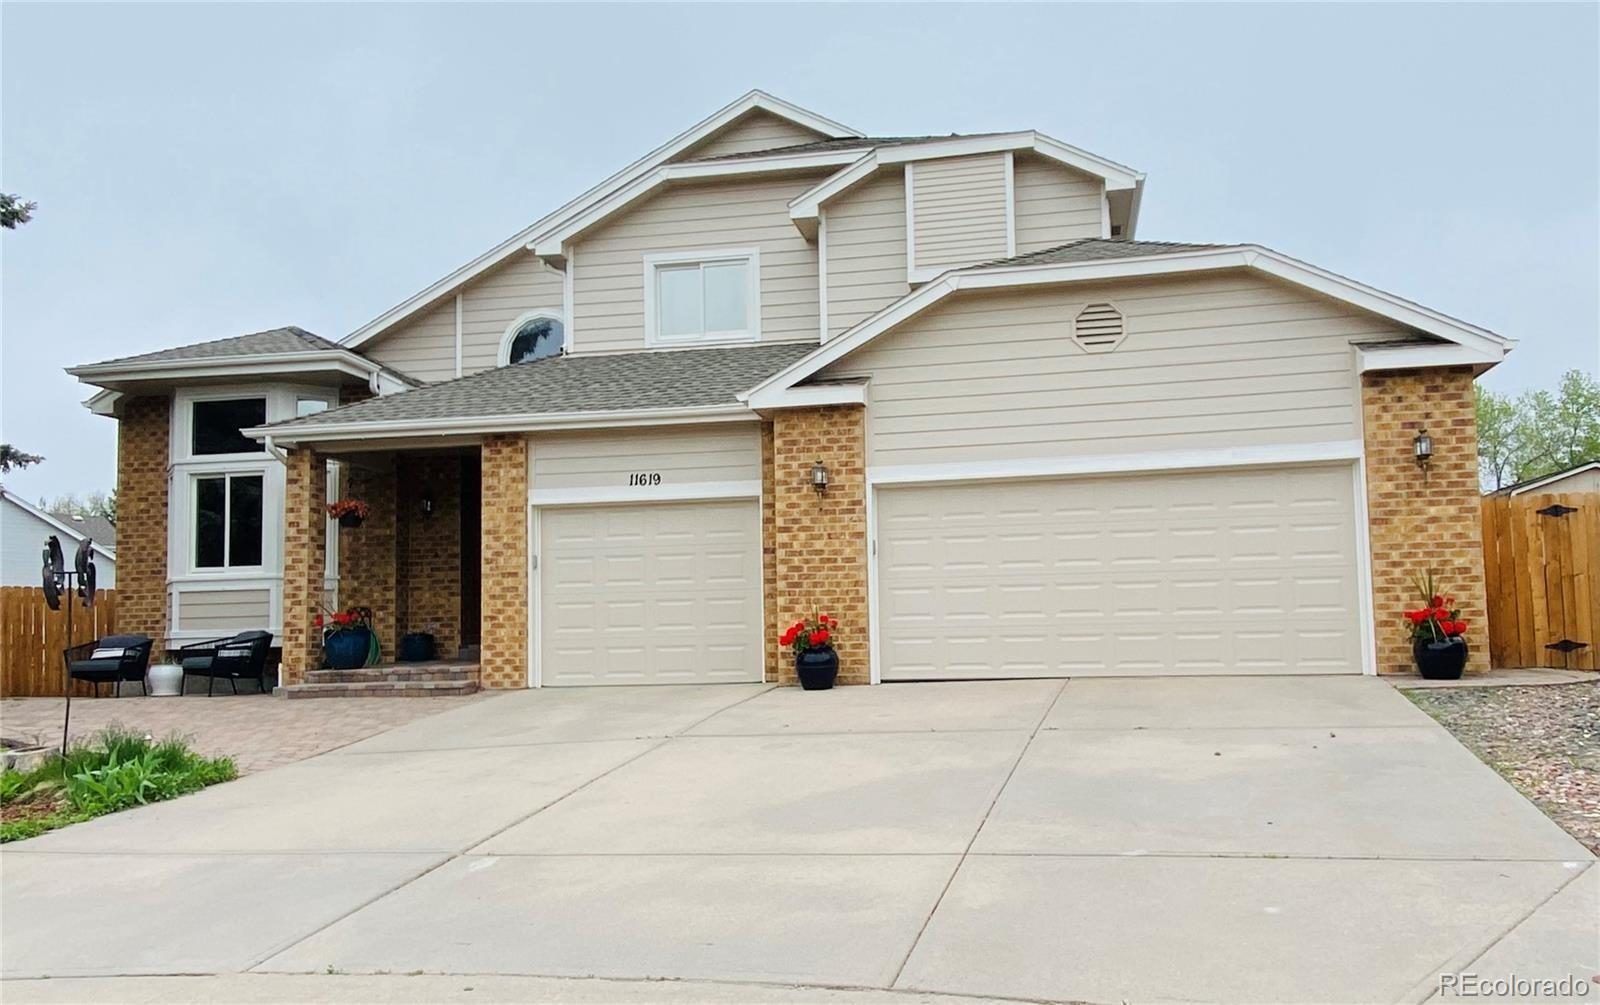 11619 W 74th Place, Arvada, CO 80005 - #: 9200772